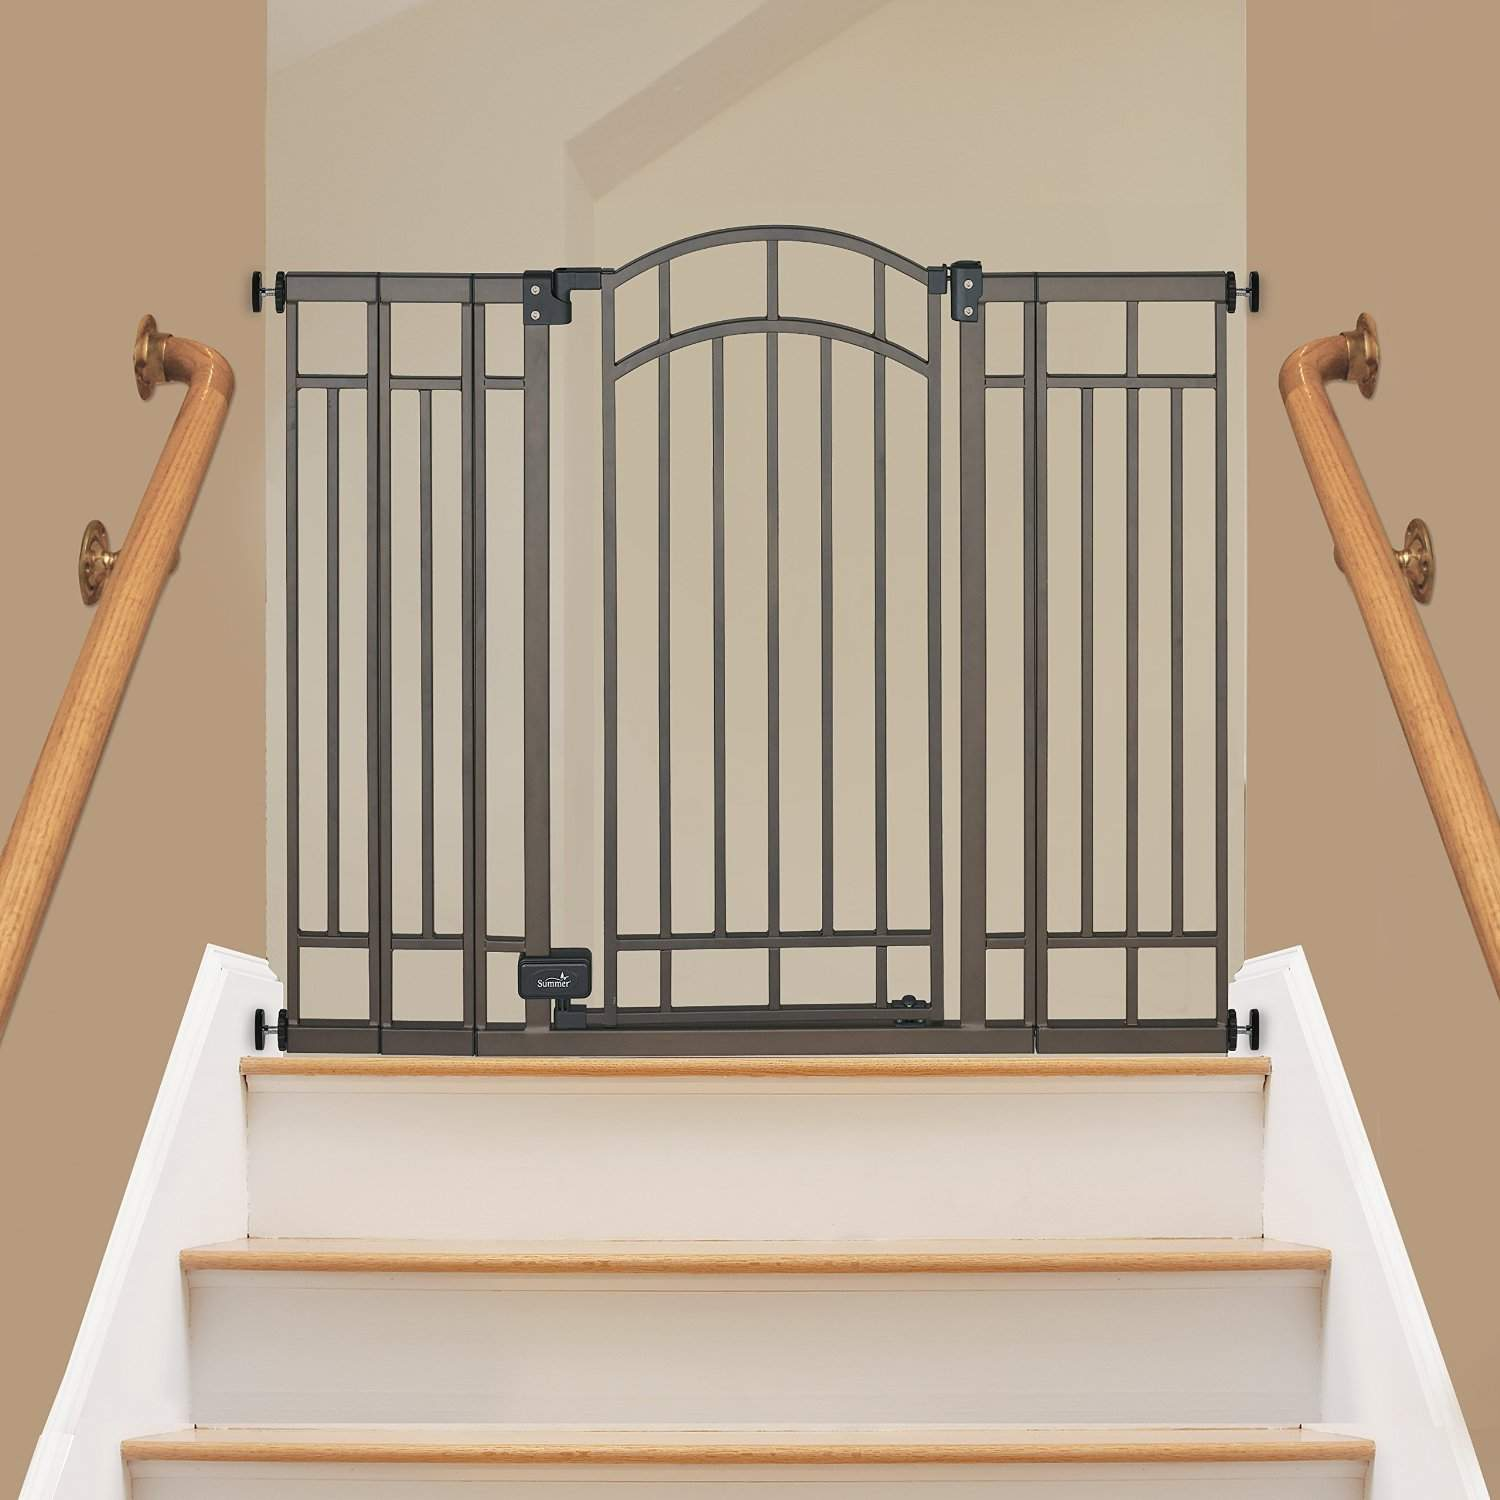 Genial ... 1500 The Top Pet And Baby Gates ...